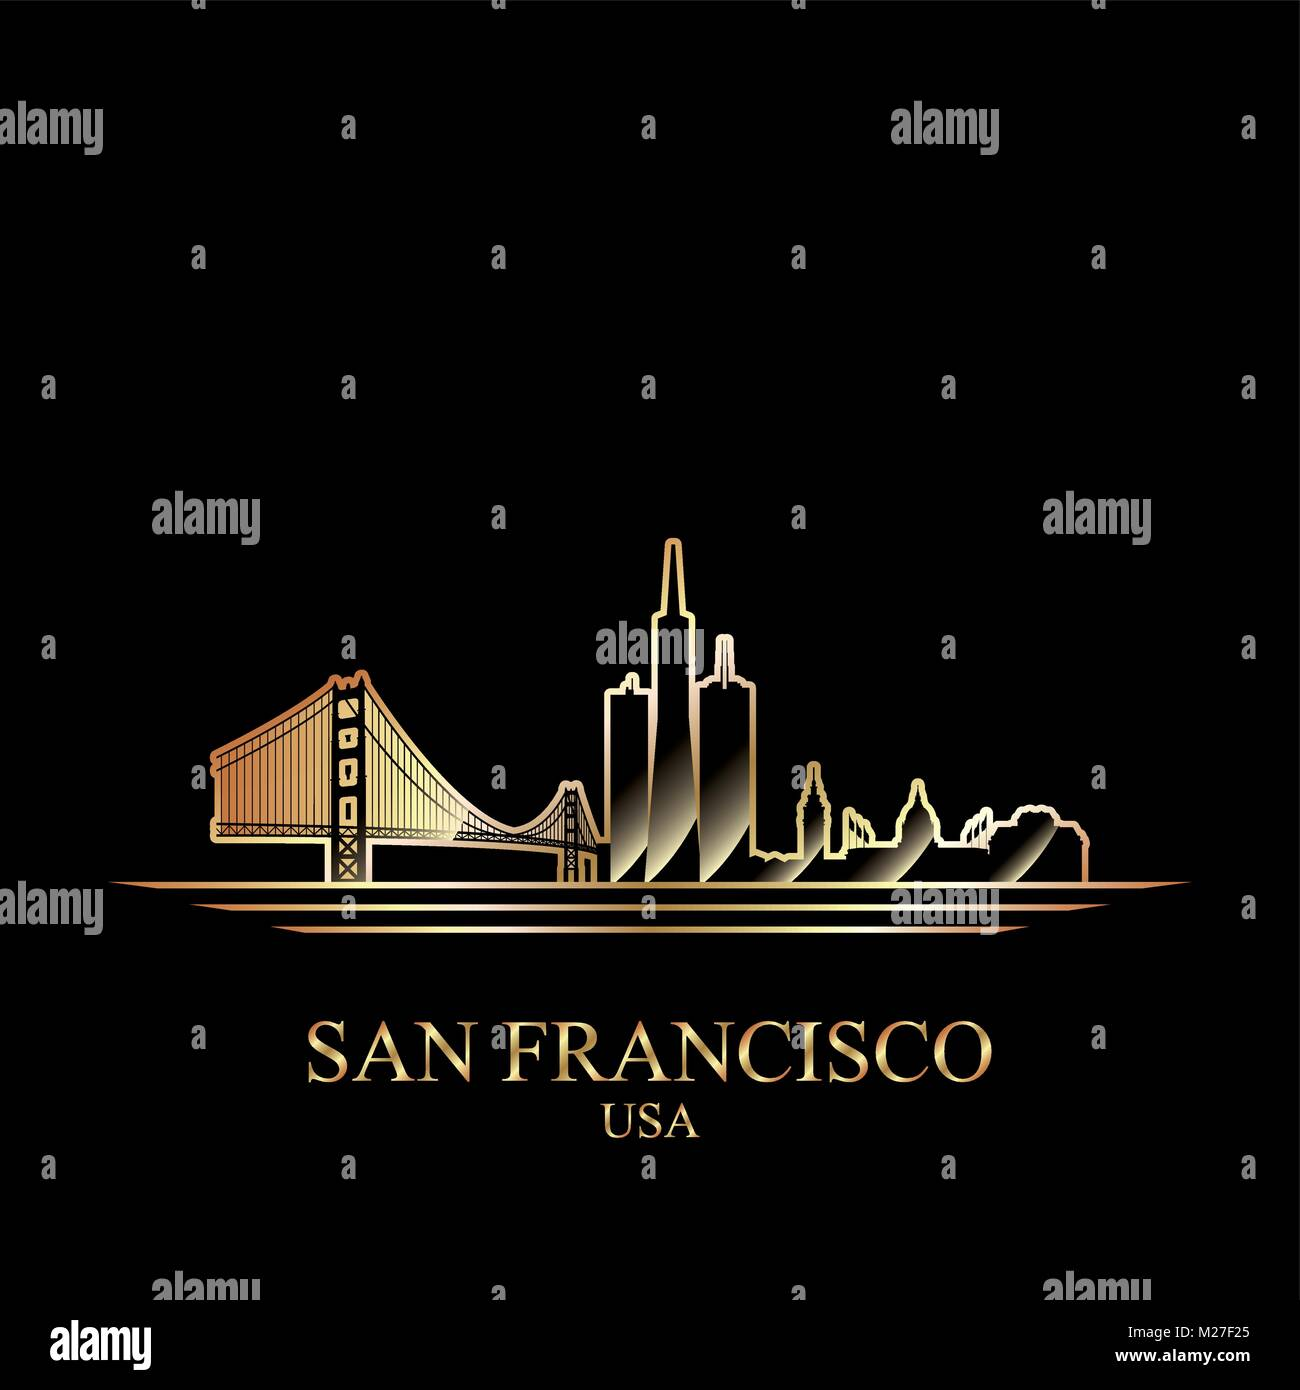 Gold silhouette of San Francisco on black background, vector illustration - Stock Image